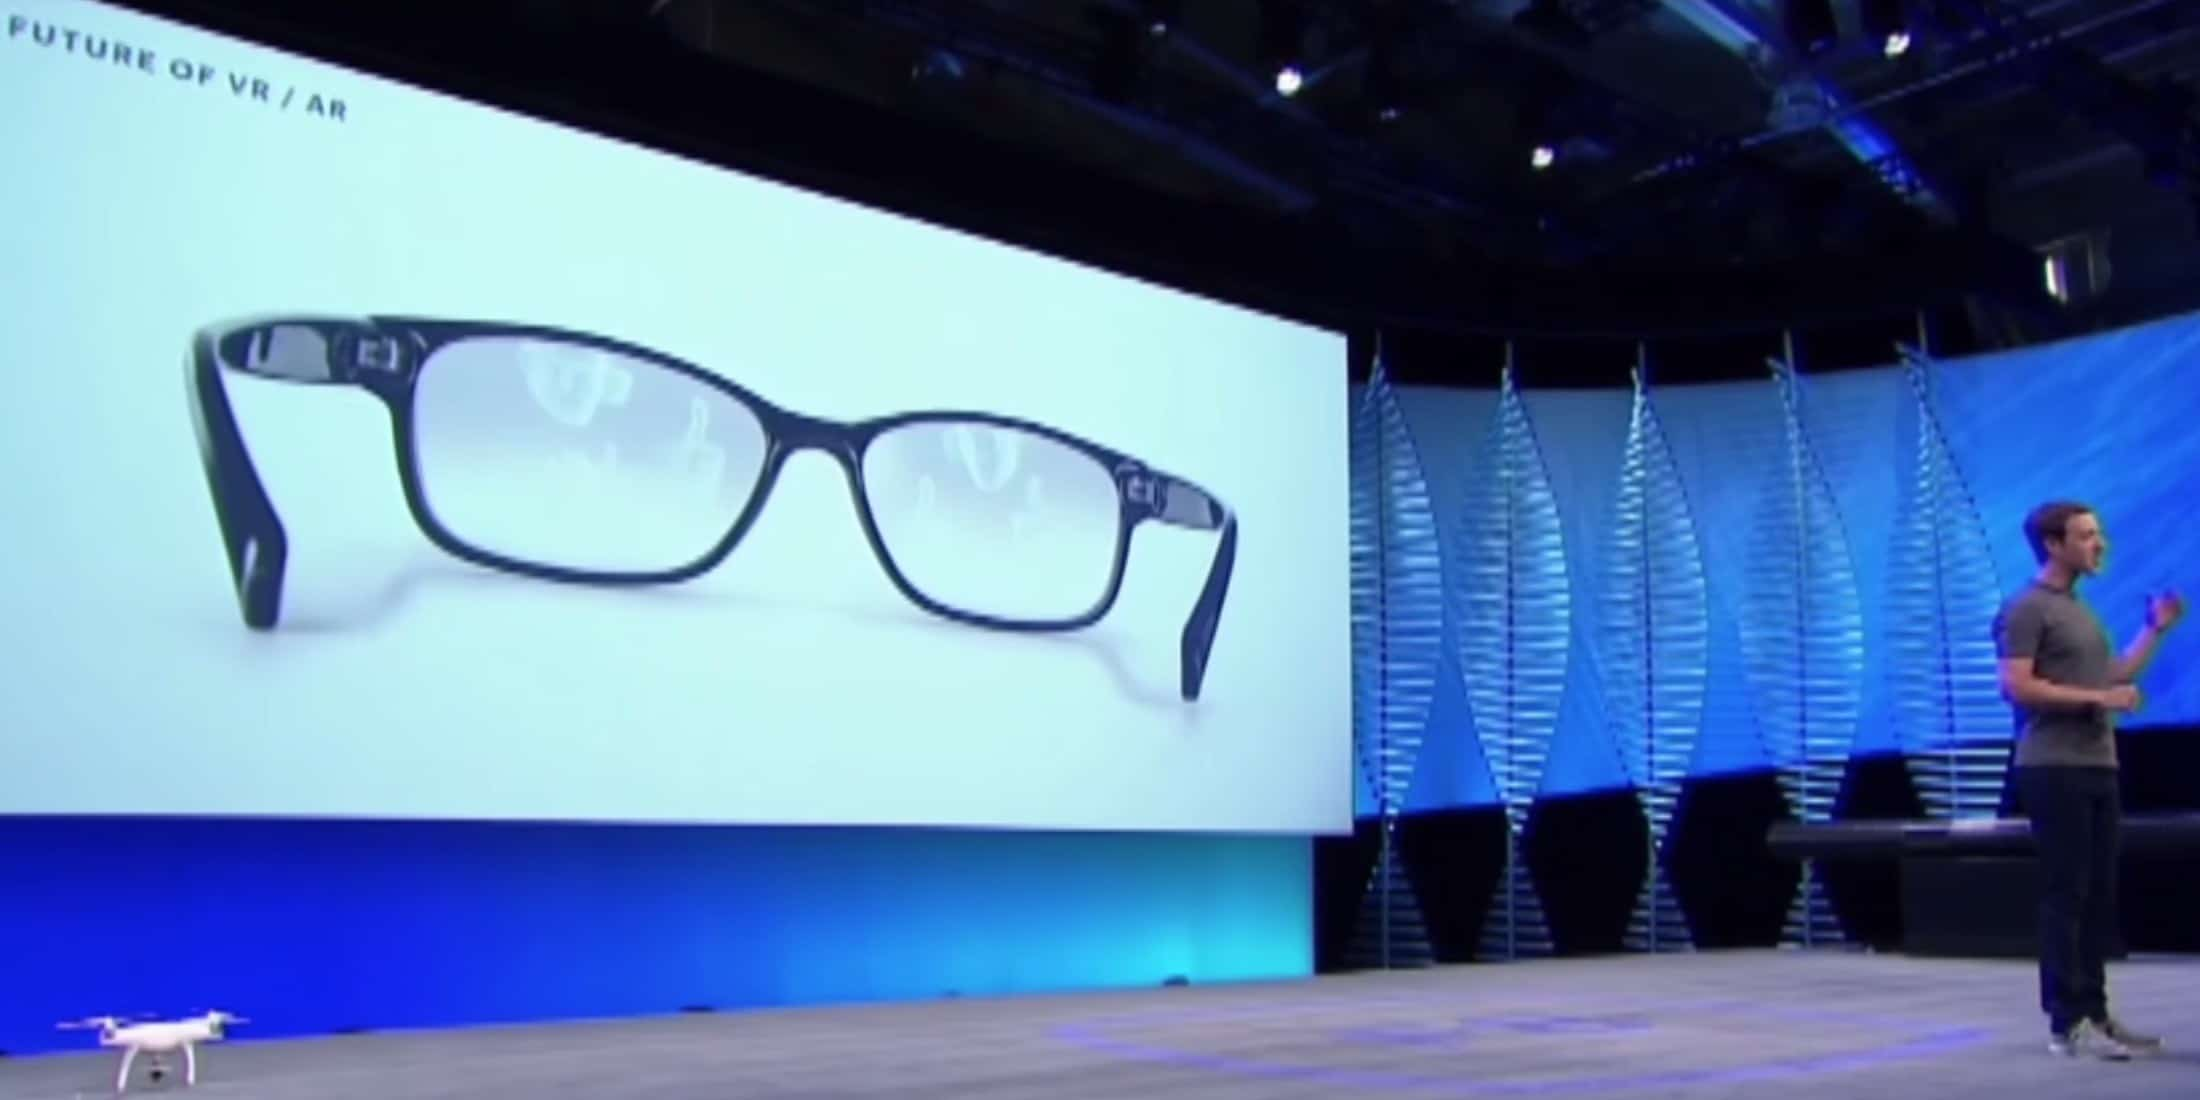 Facebook Smart Glasses 'Orion' targeted between 2023-25